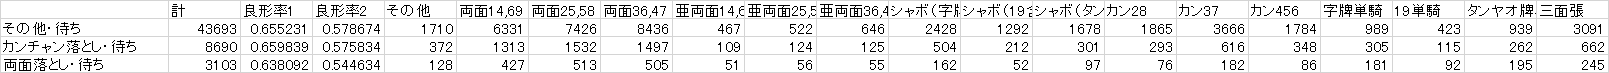 141230-02.png